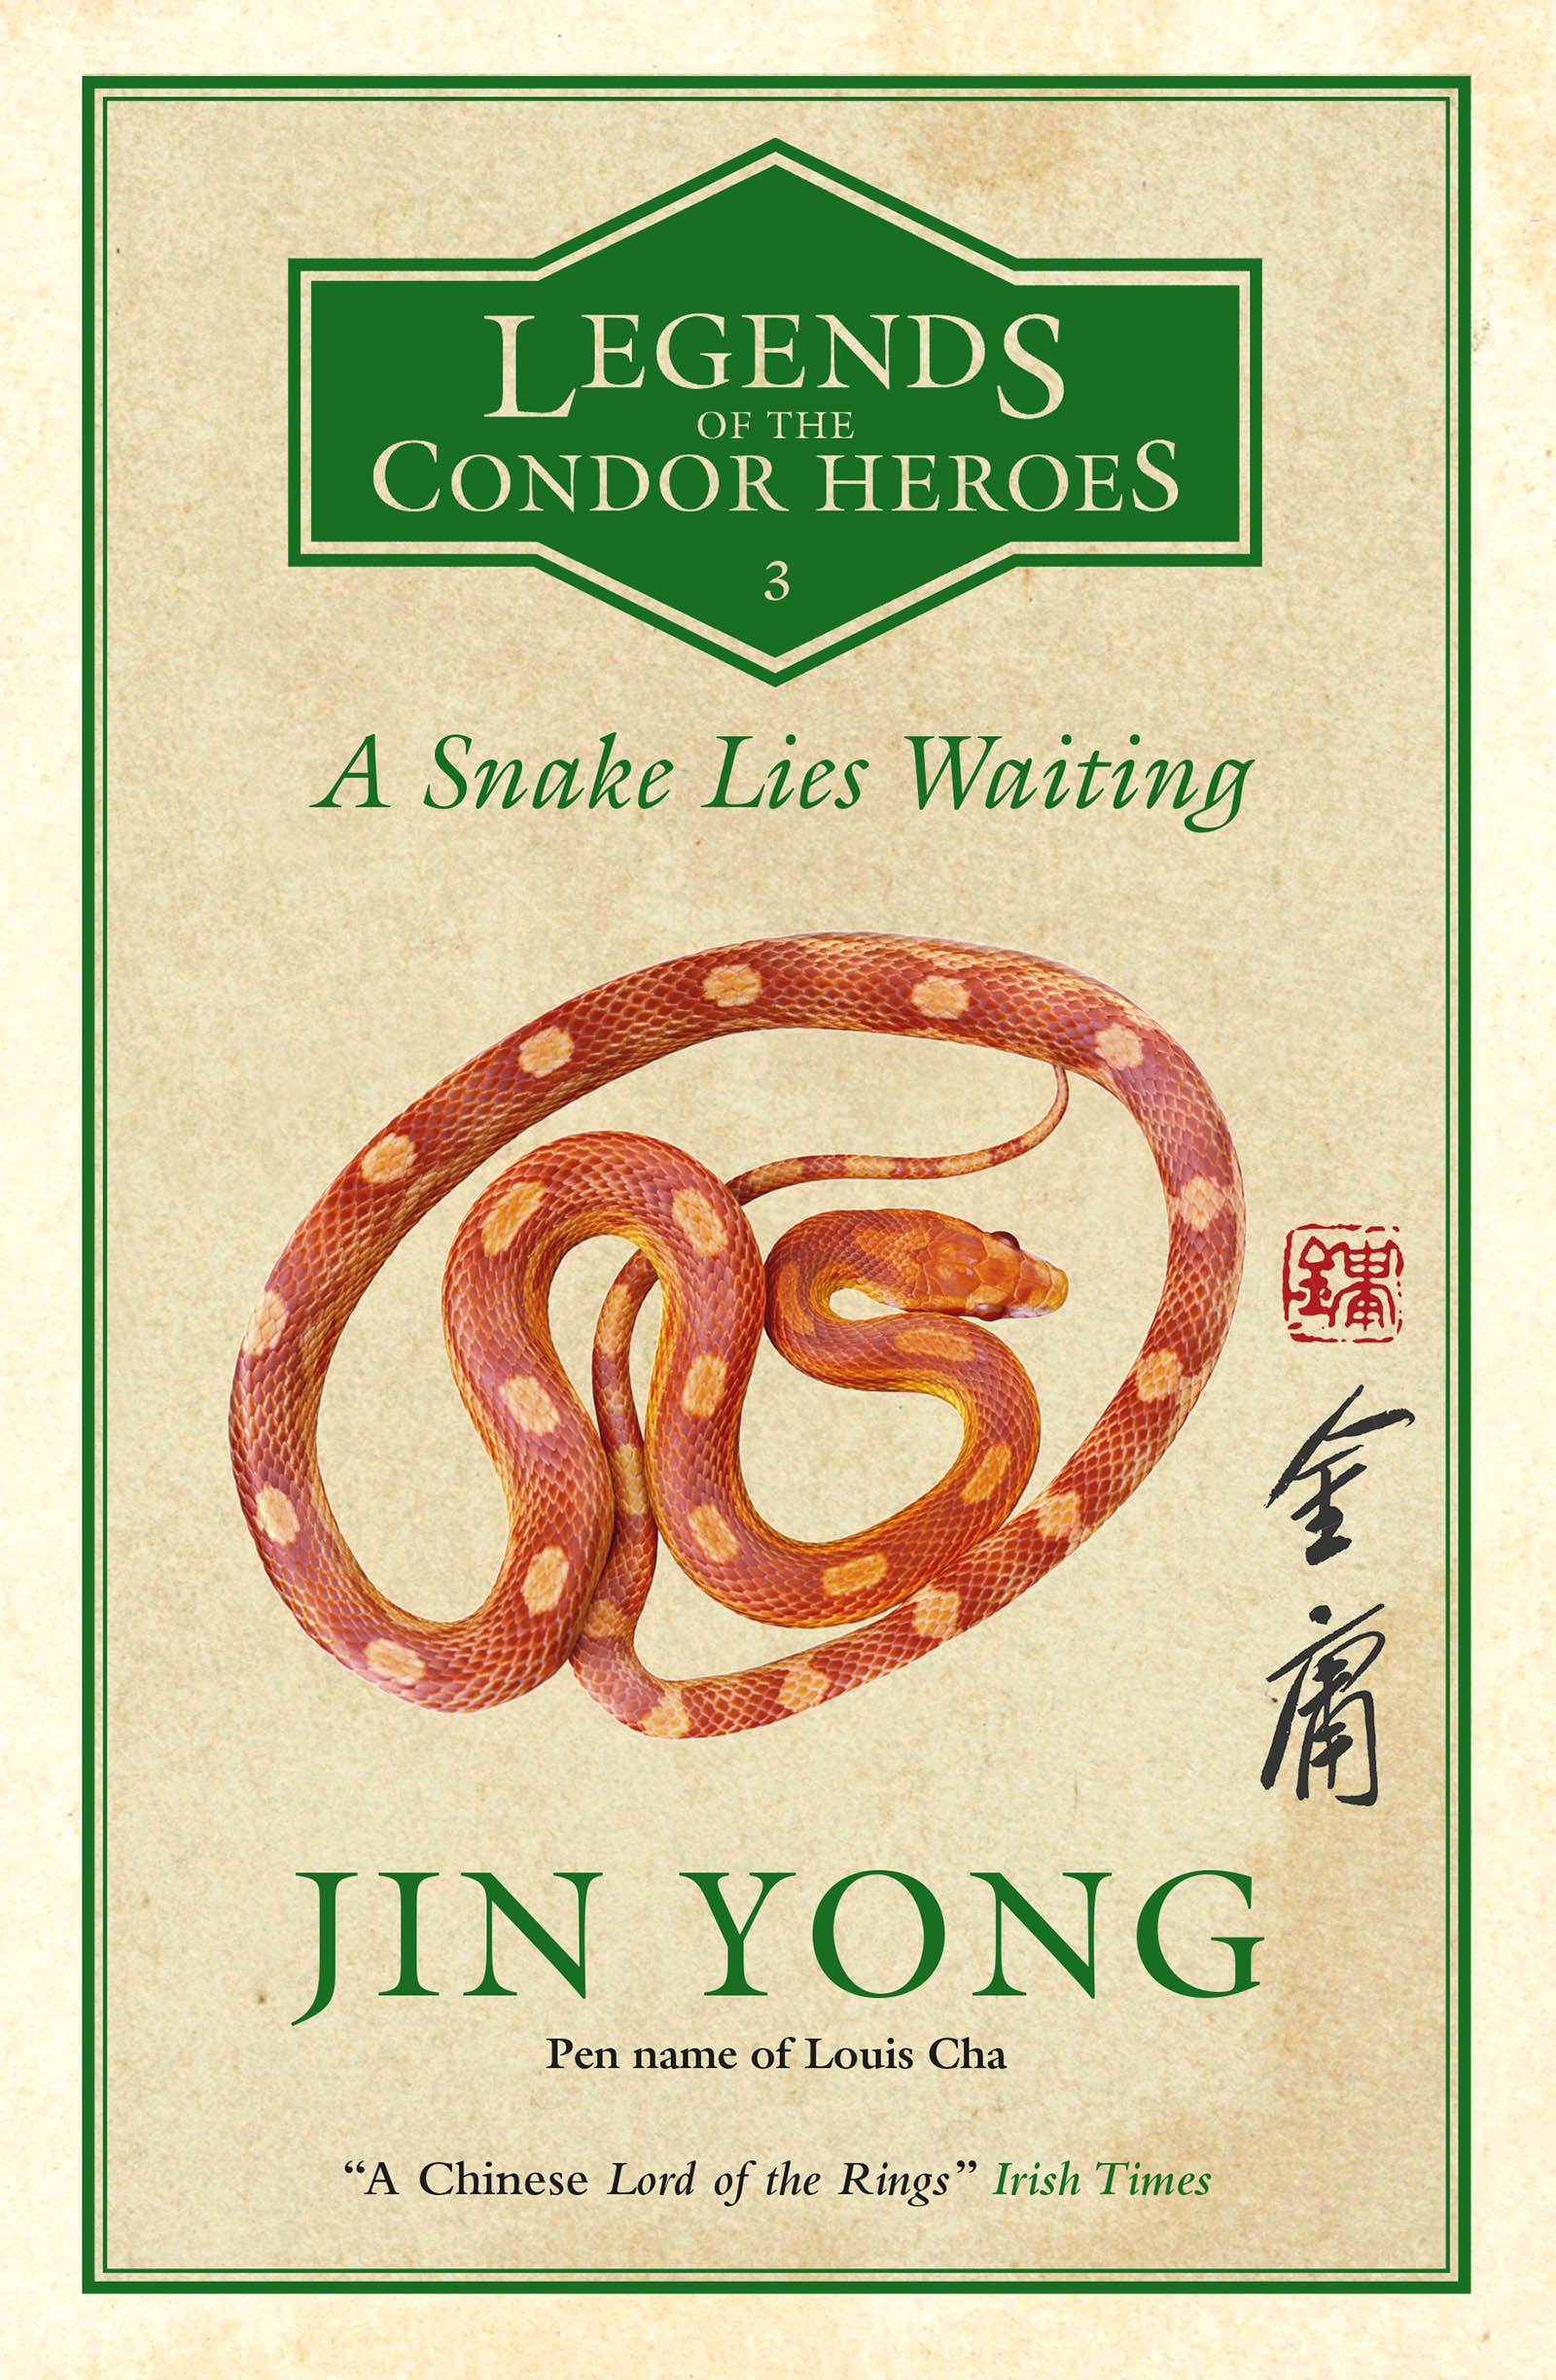 A Snake Lies Waiting (Legends of the Condor Heroes #3)